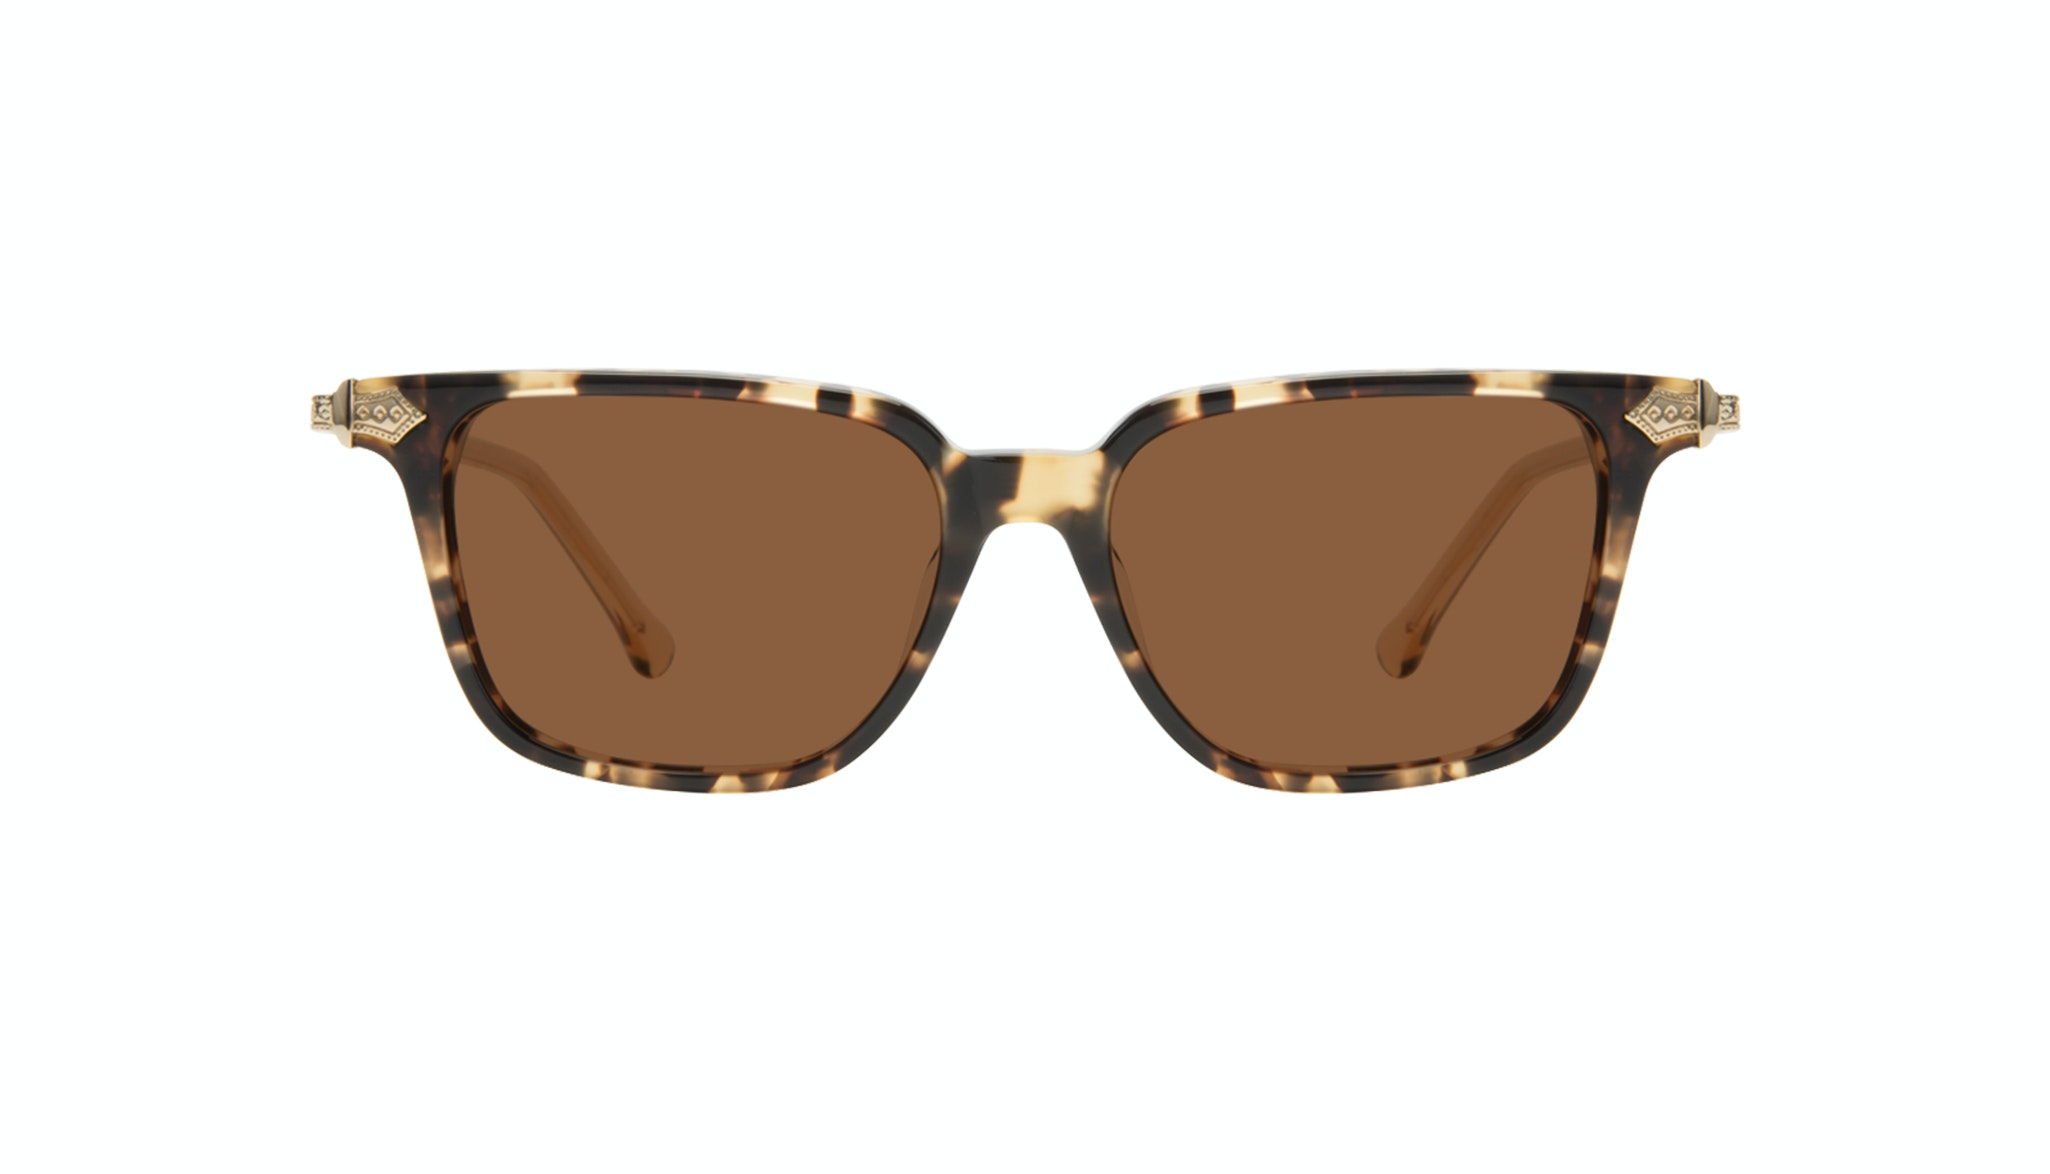 Affordable Fashion Glasses Square Sunglasses Women Twinkle Golden Chip Front